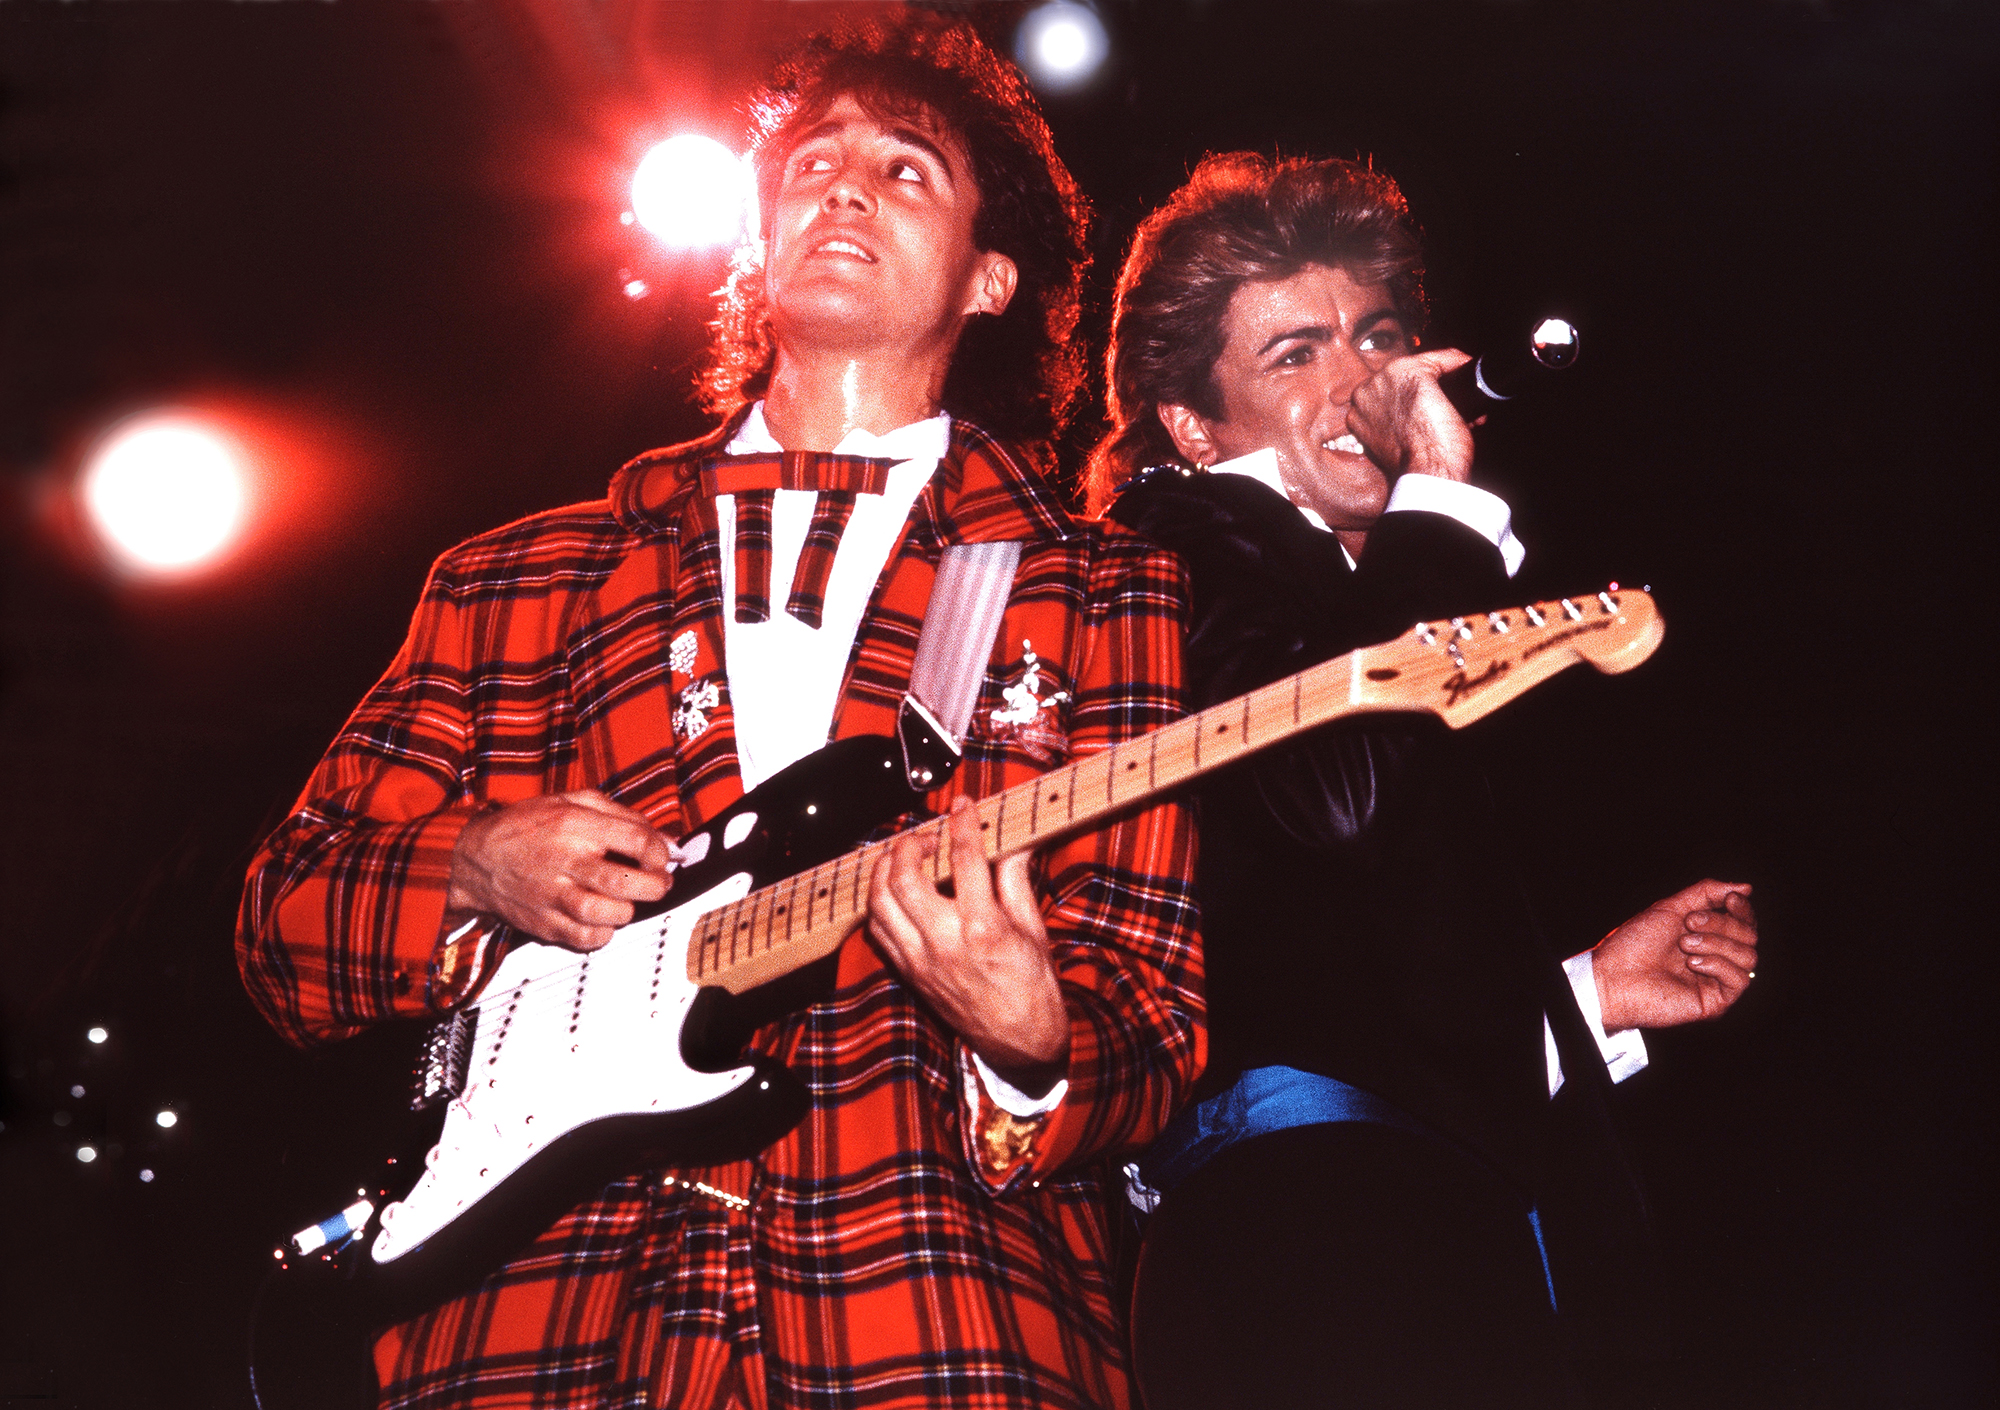 Andrew Ridgeley and George Michael of Wham! perform in London in 1984.